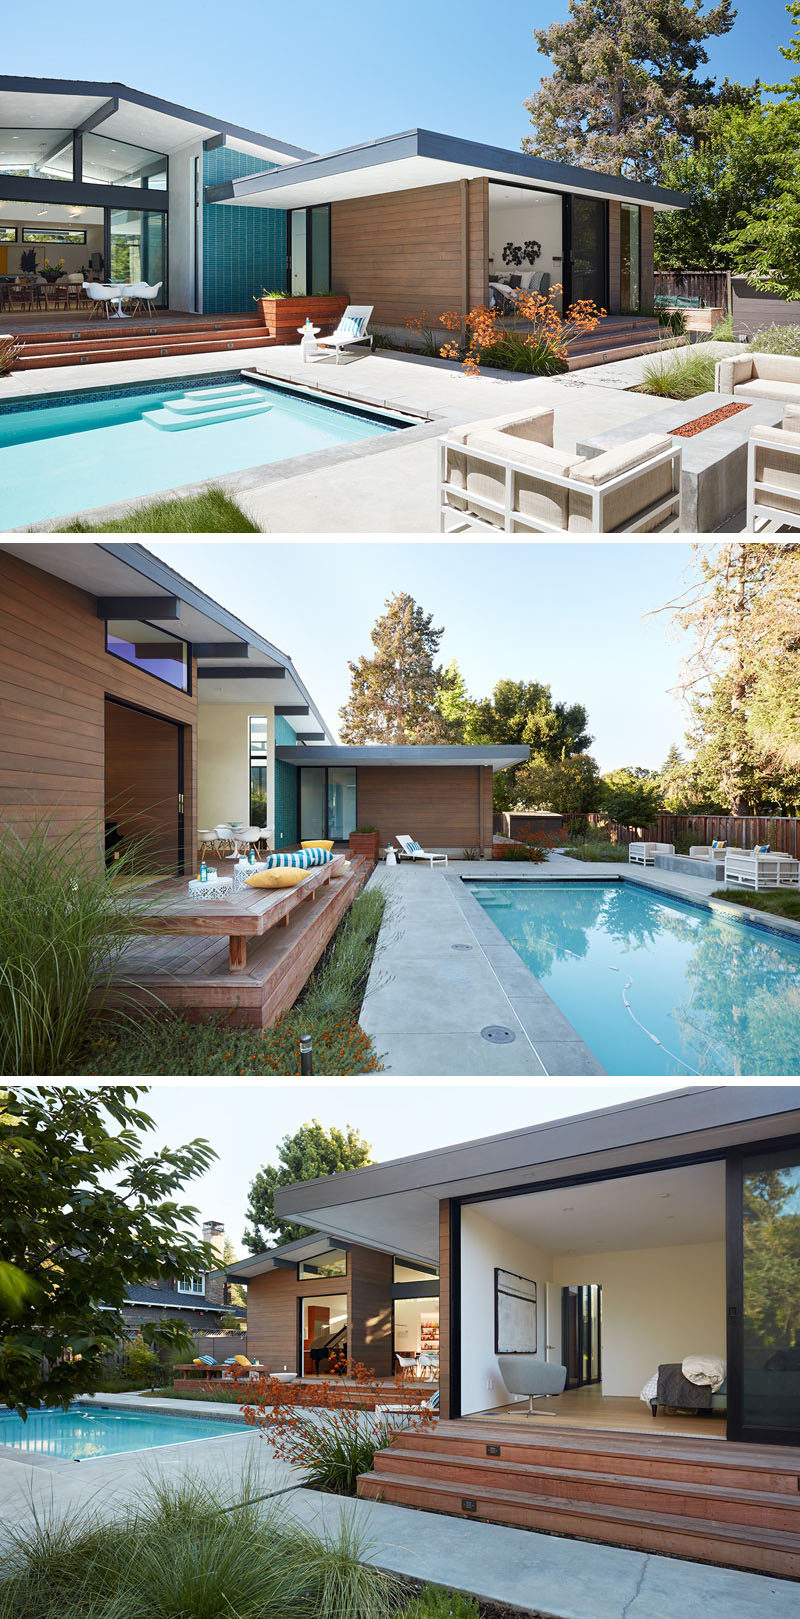 Large sliding glass panels and pocketing glass doors open this modern house to the backyard, that features a deck overlooking the pool, where the family can come together outdoors.